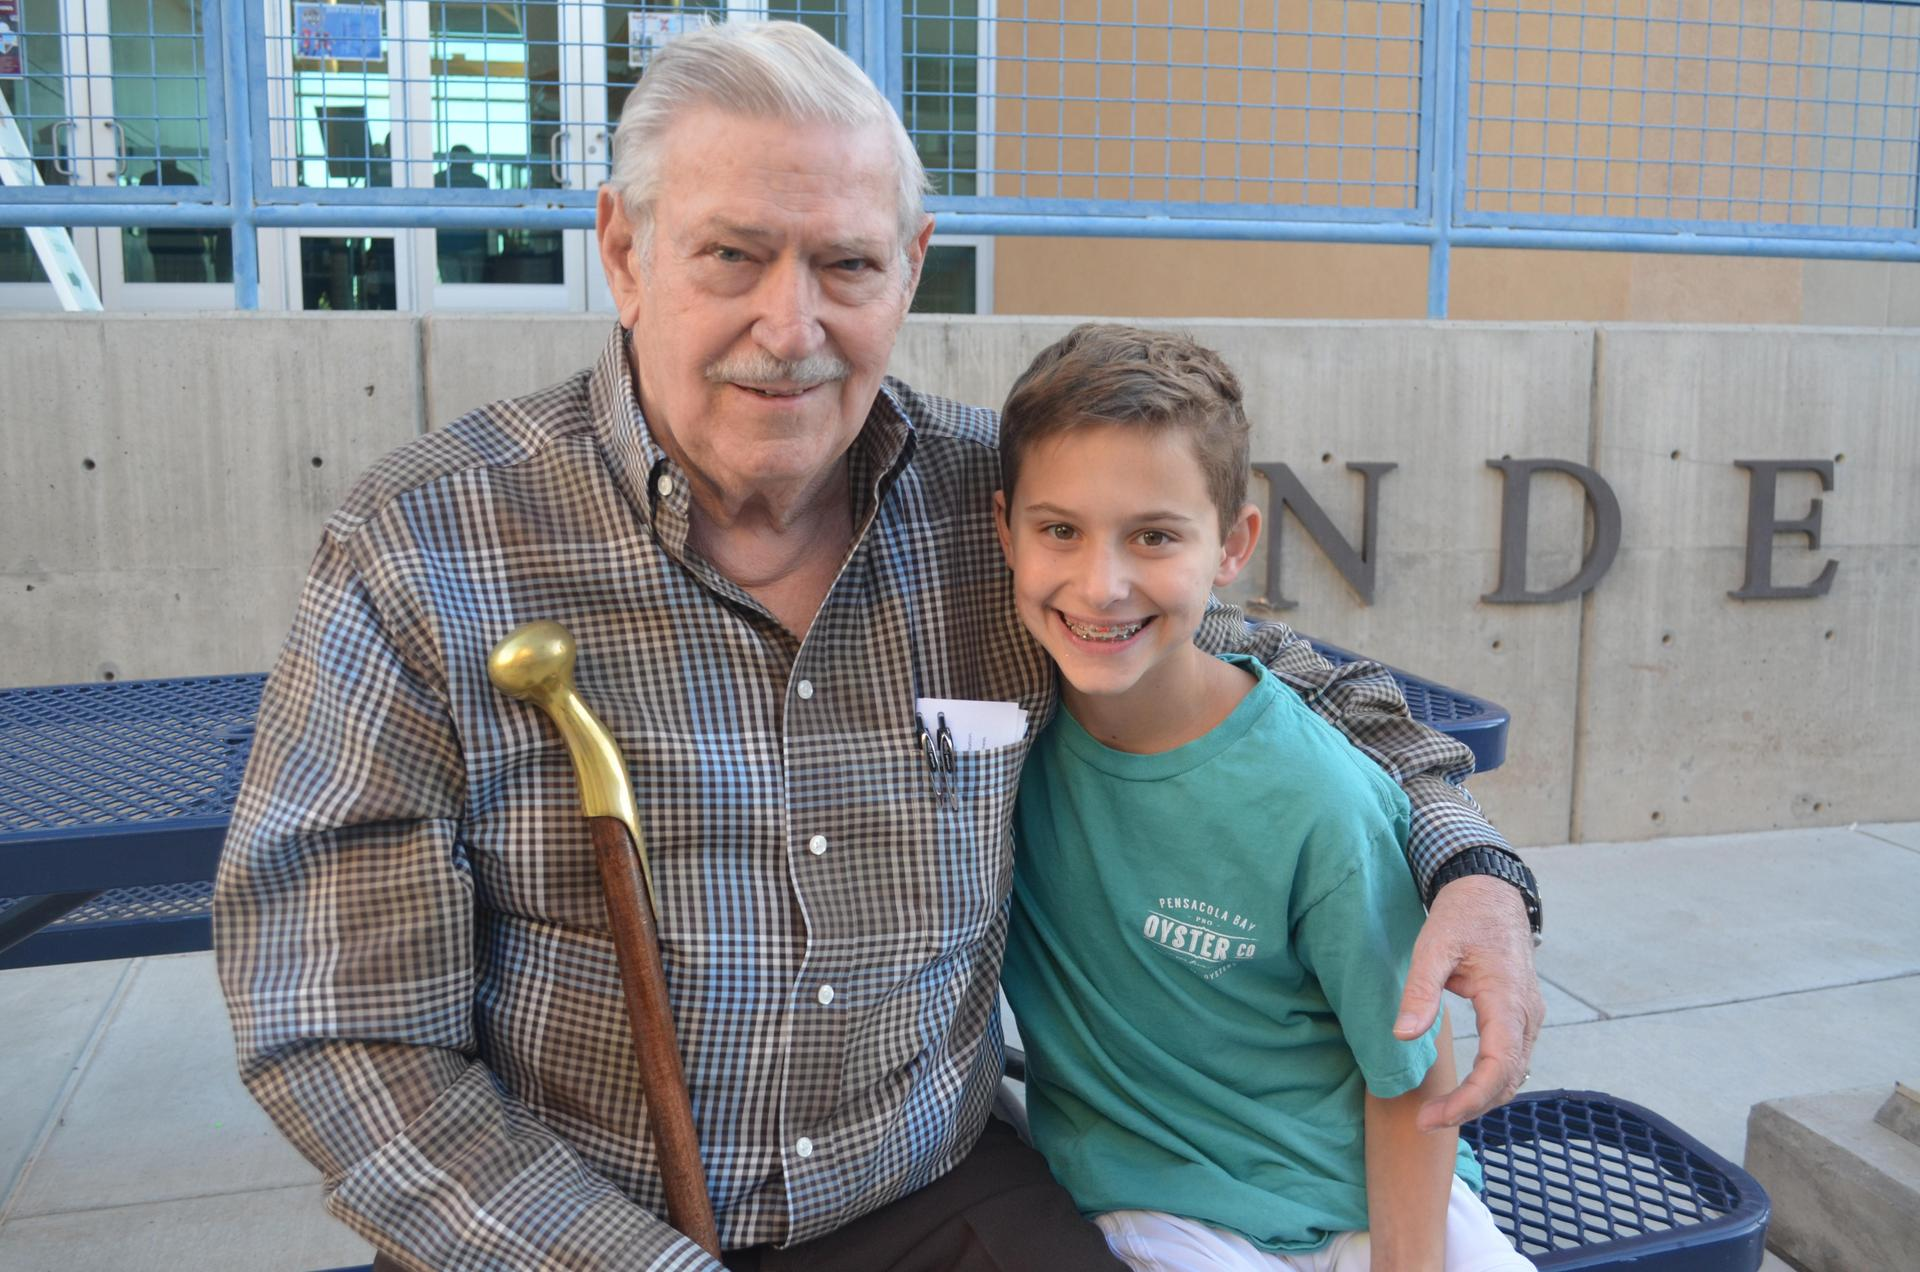 Student smiles with grandparent